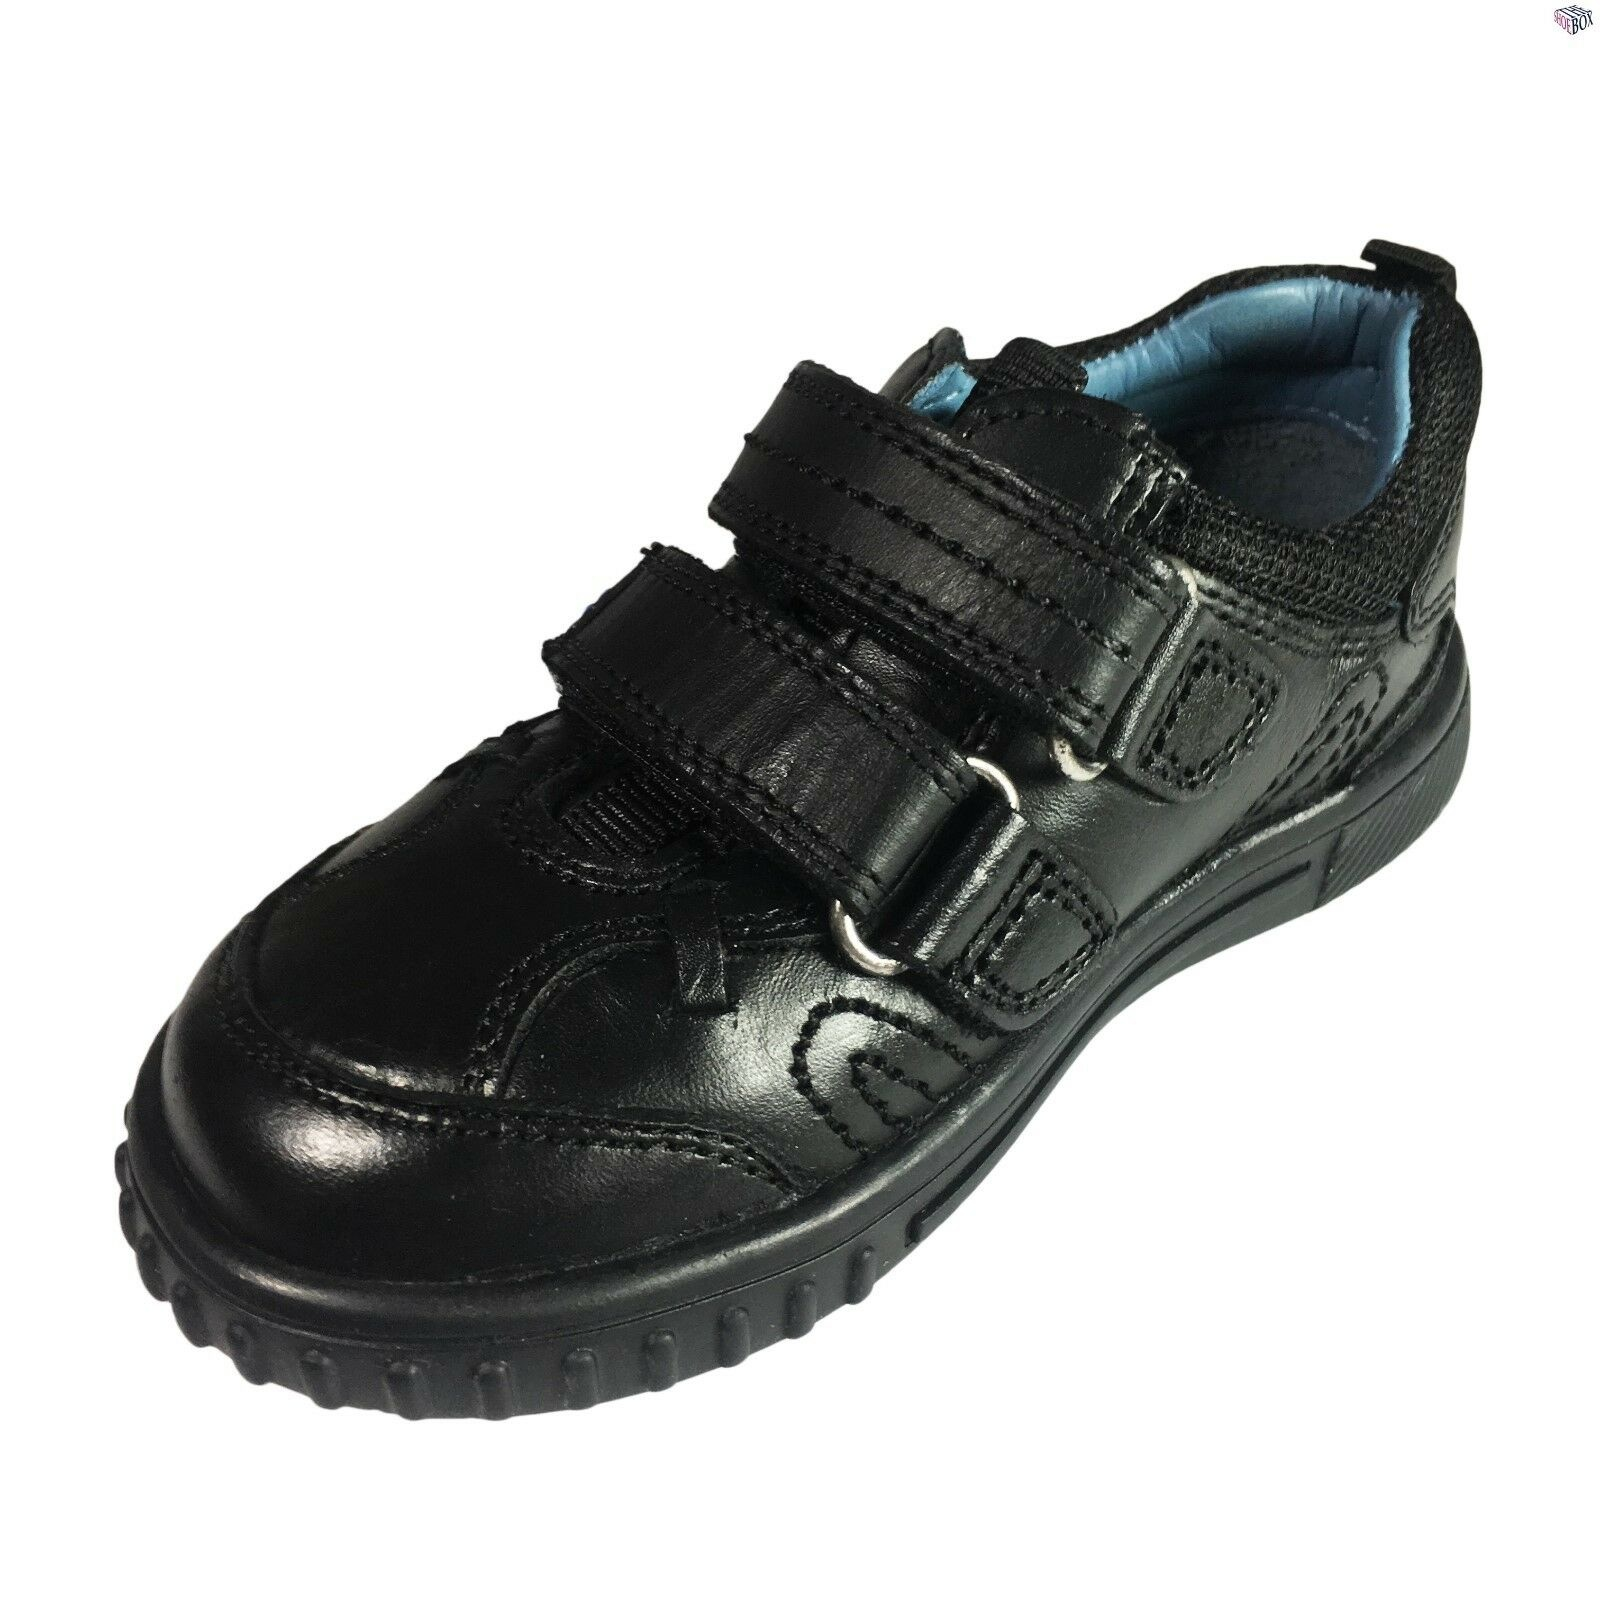 Hush Puppies Whale Infant